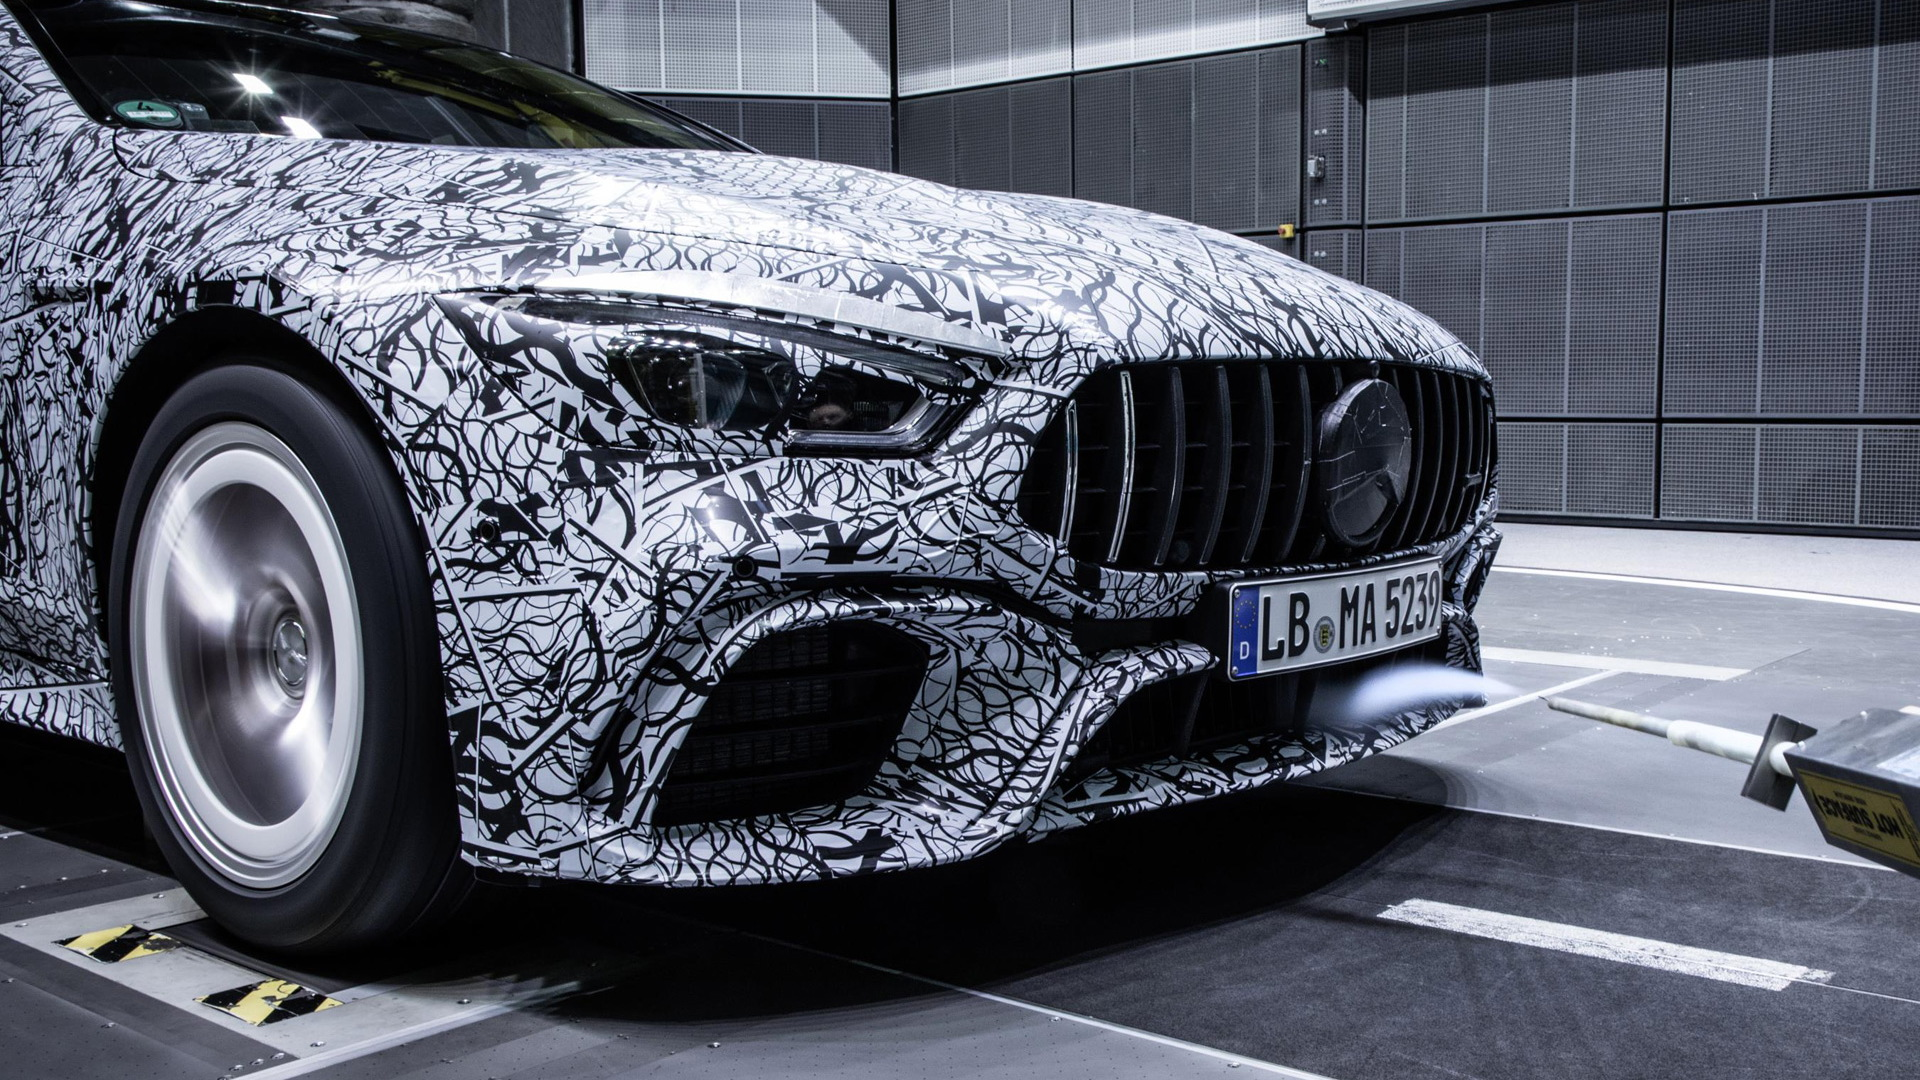 Teaser for Mercedes-AMG GT Coupe debuting at 2018 Geneva auto show